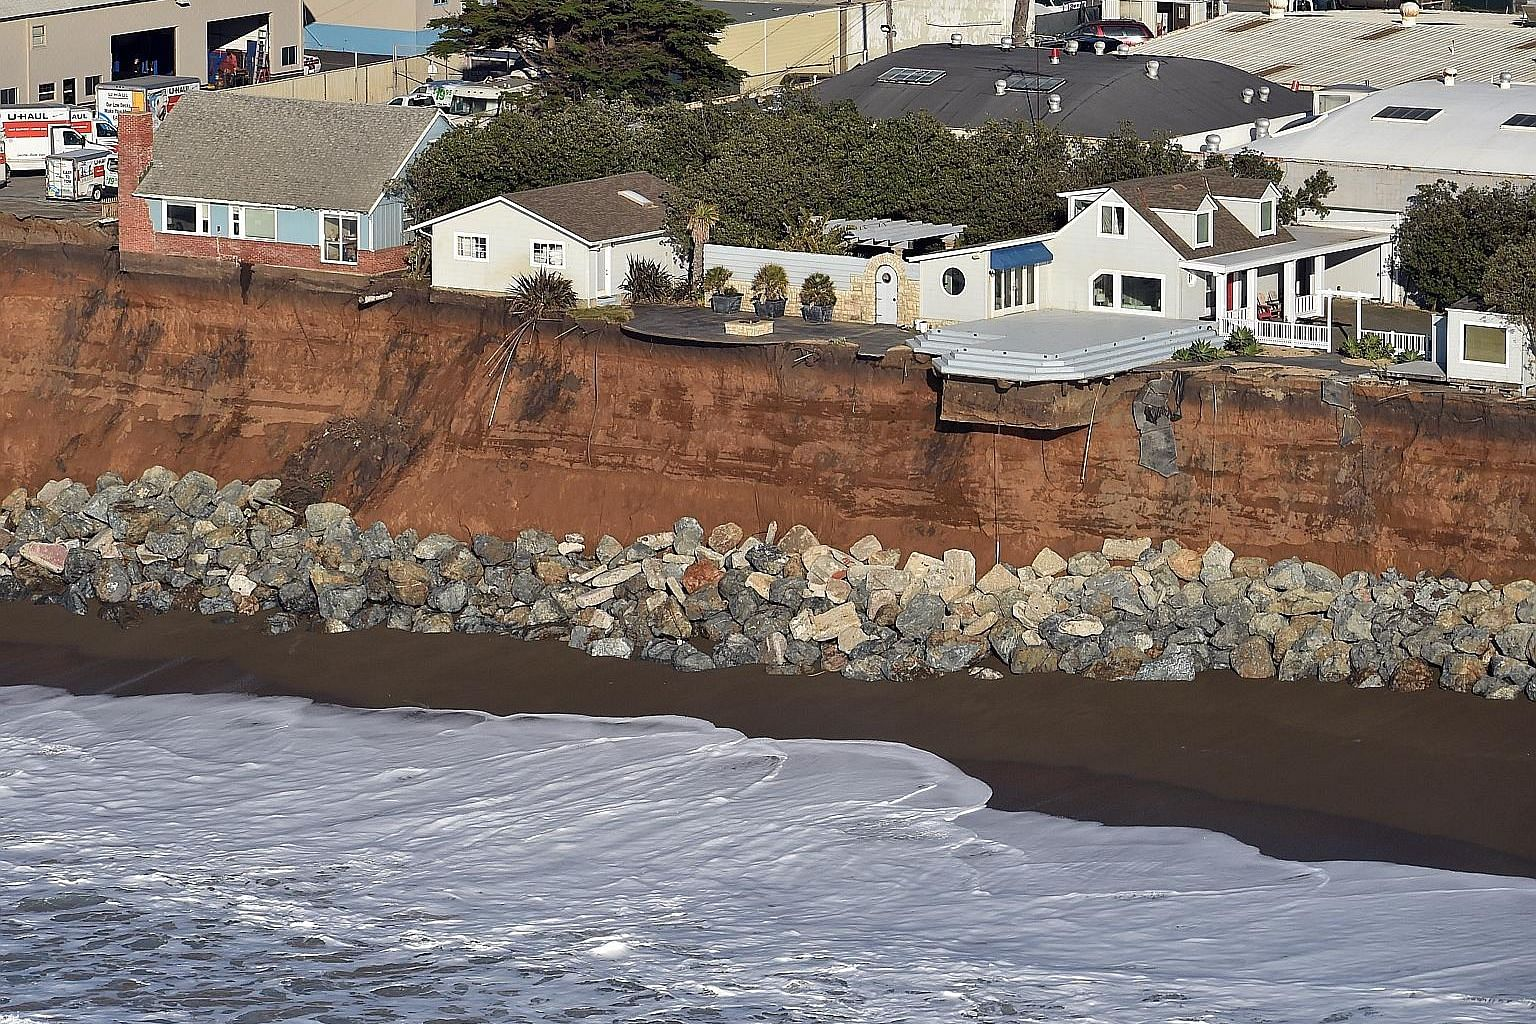 Houses resting on the edge of an eroding cliff in Pacifica, California, in January last year. Storms and powerful waves caused by last year's unusually potent El Nino have intensified erosion along nearby coastal bluffs and beaches in the area, as we